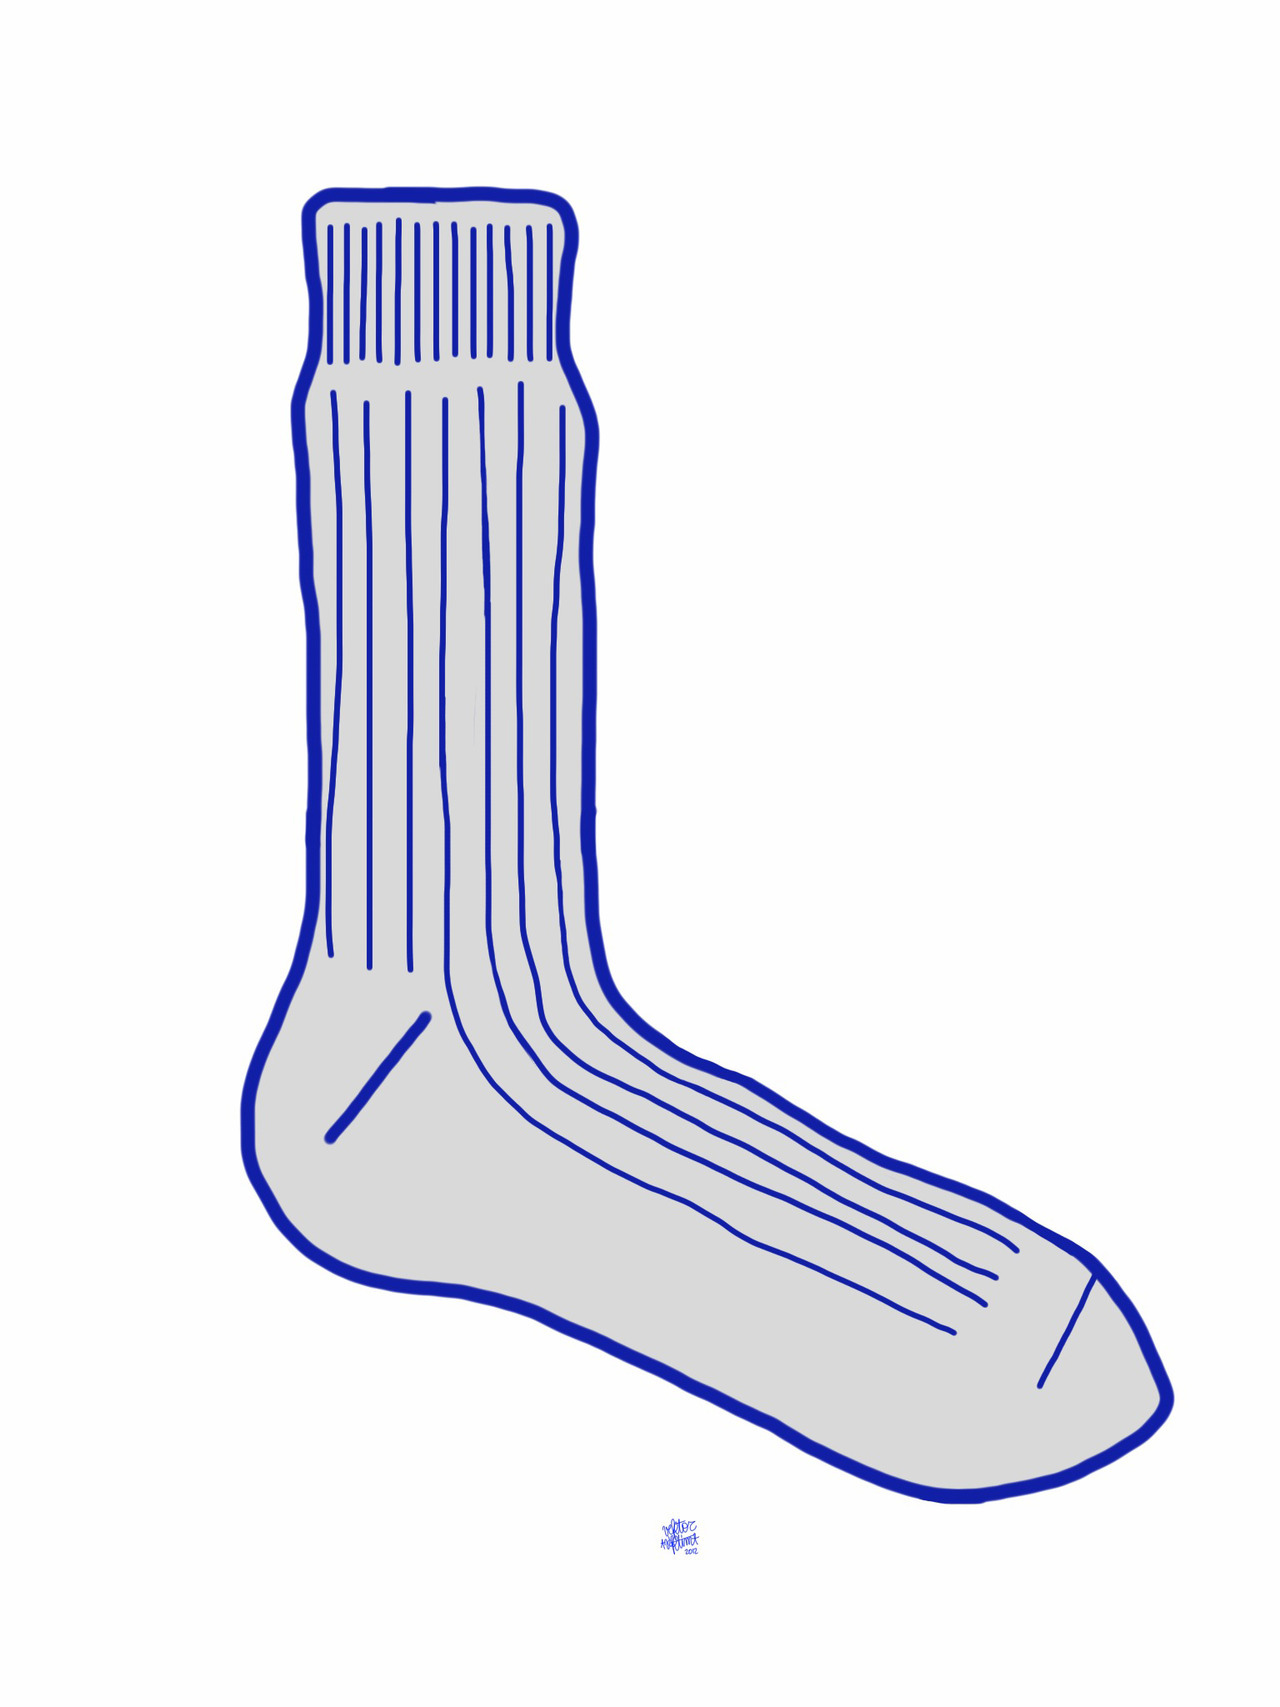 Lichtenstein sock.